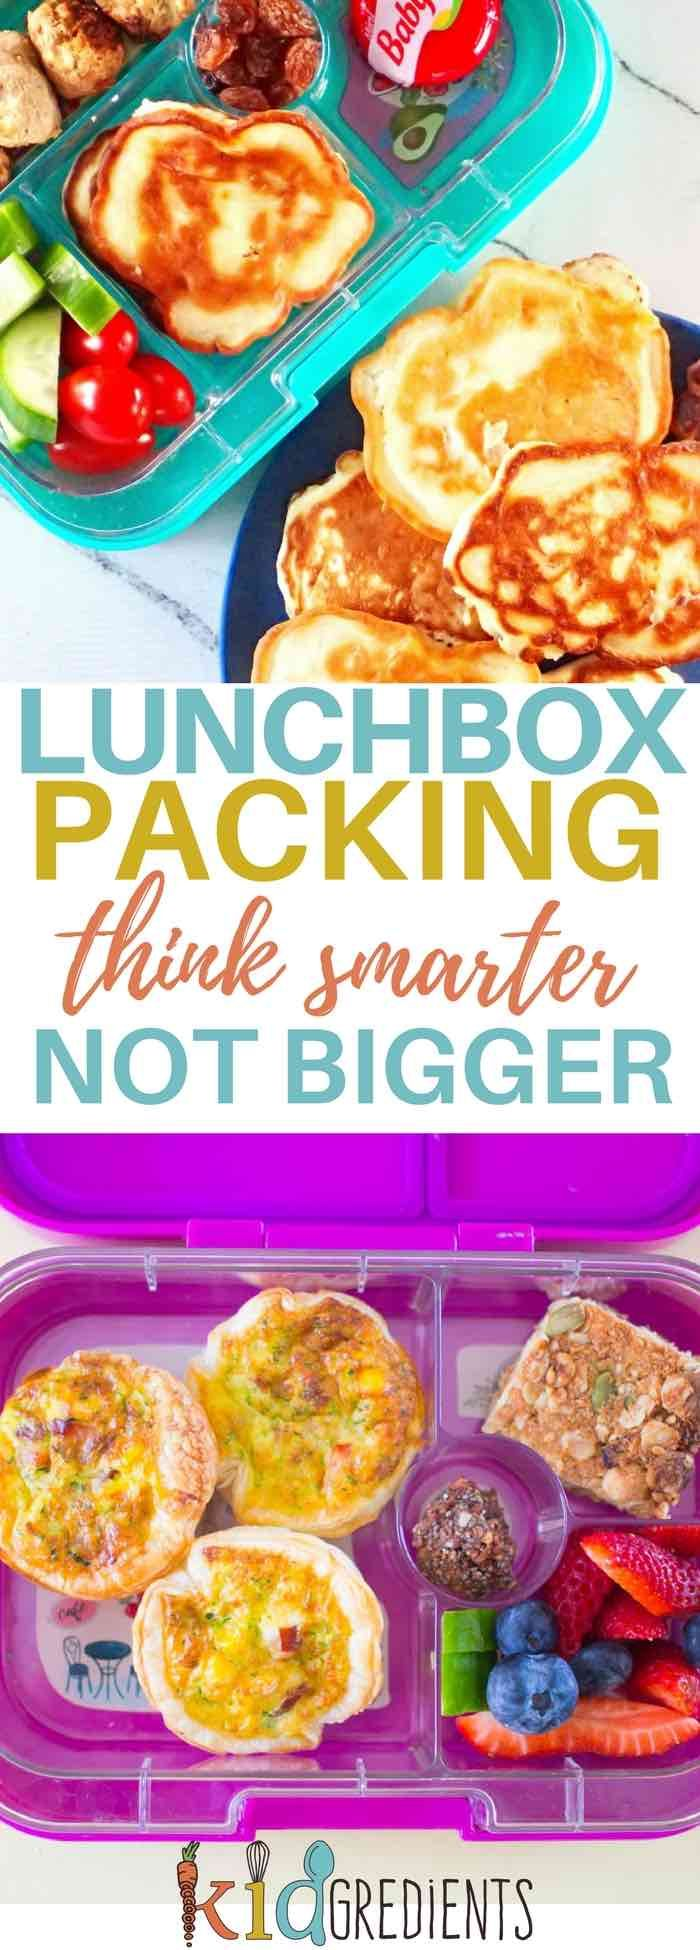 Lunchbox packing: think smarter not bigger. You might find that changing what you pack has a big effect on how much food you need to send! #kidsfood #lunchboxpacking